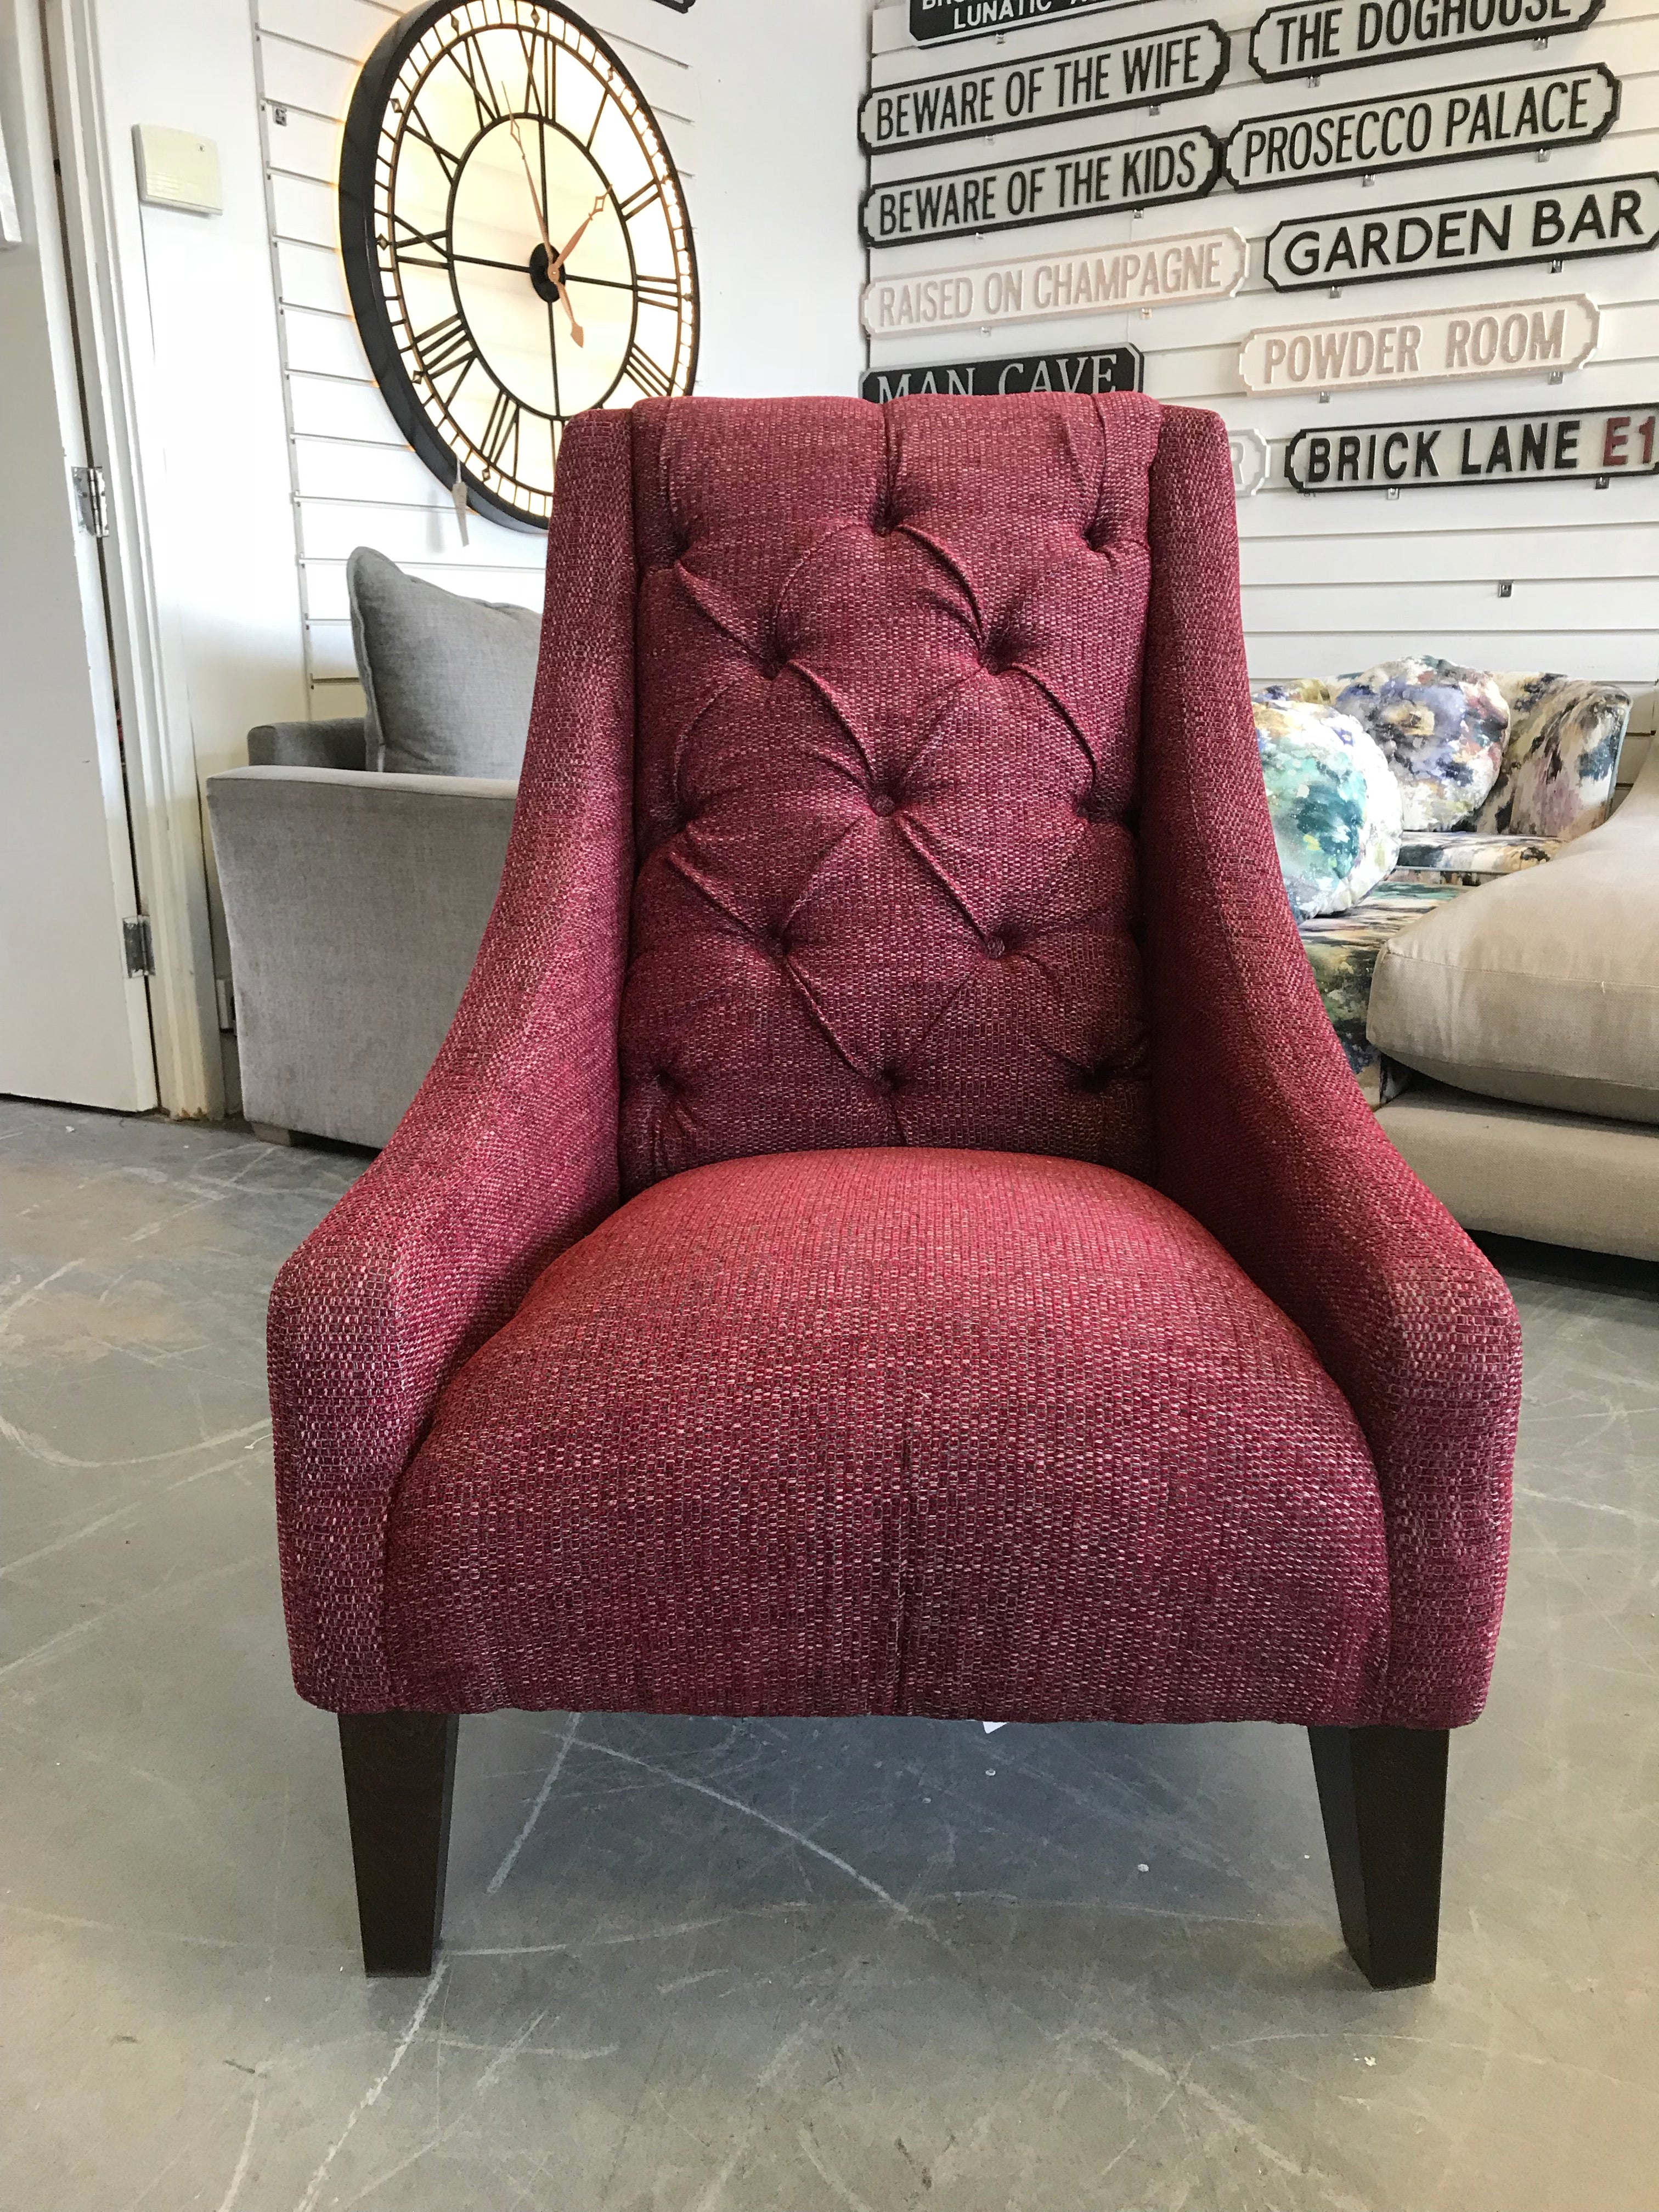 Enjoyable B High Button Back Accent Armchair In Burgundy Red Tweed Fabric Ibusinesslaw Wood Chair Design Ideas Ibusinesslaworg